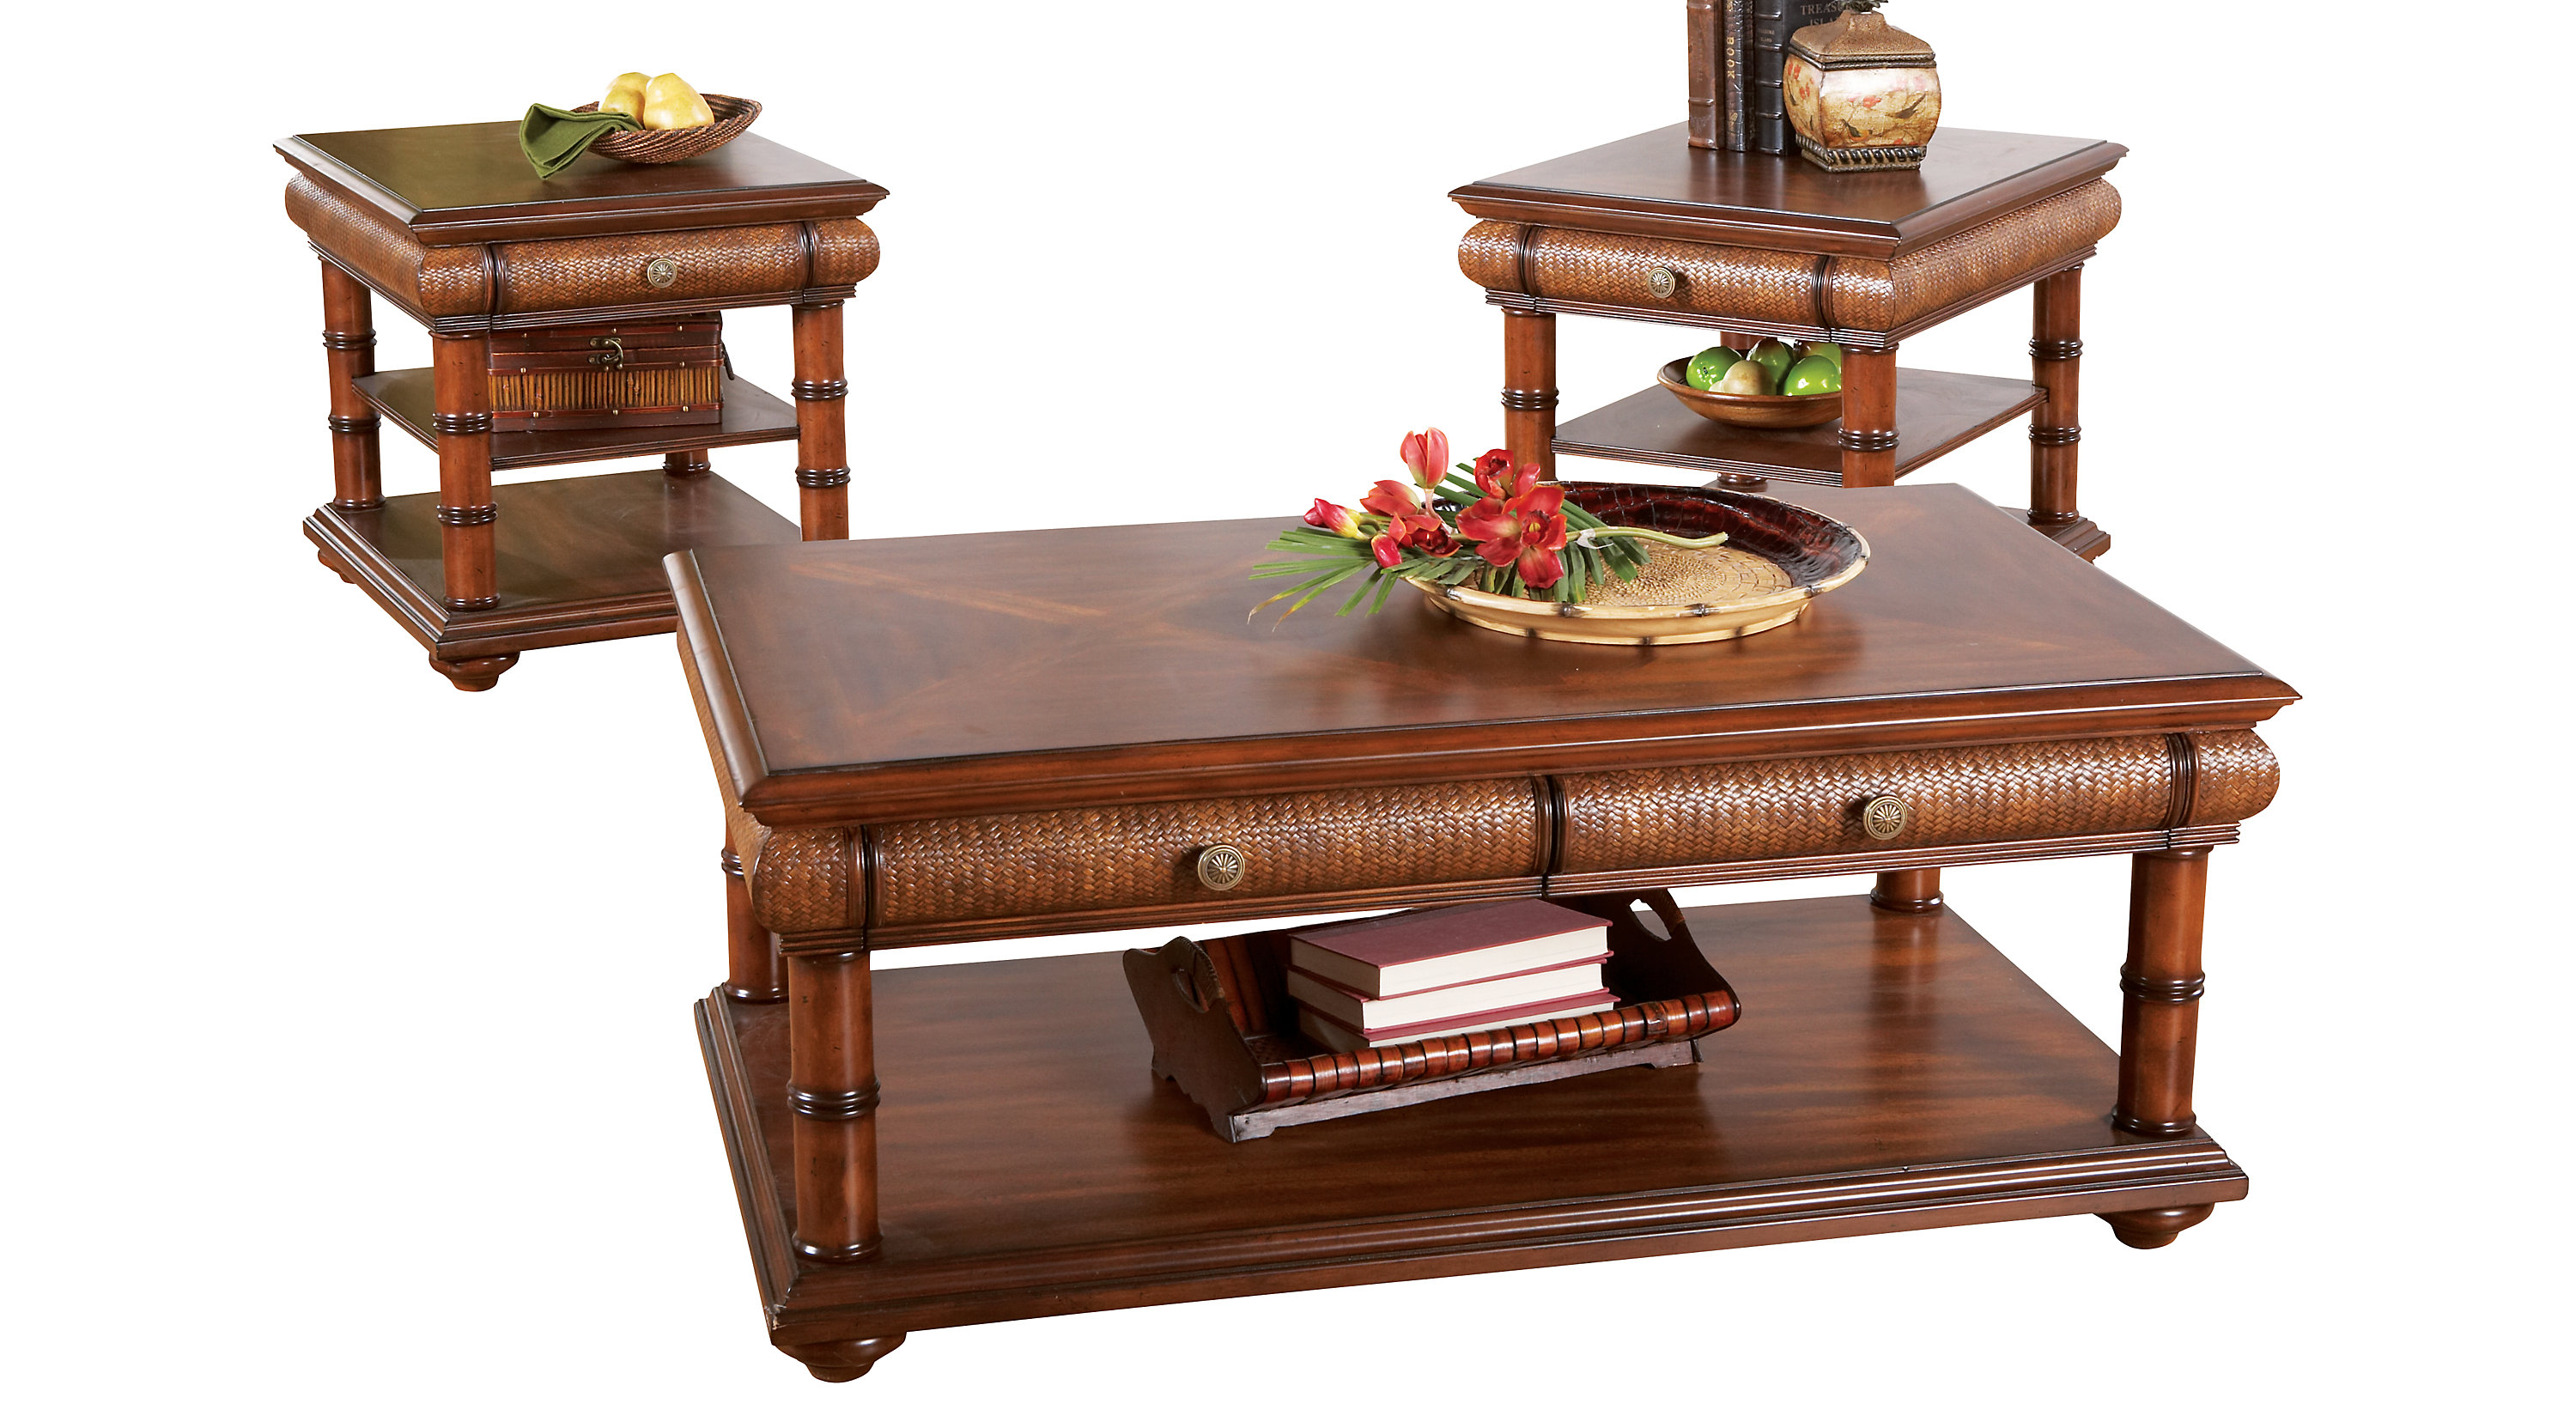 $799.97 - Key West Tan 3 Pc Table Set - Rectangle - Casual